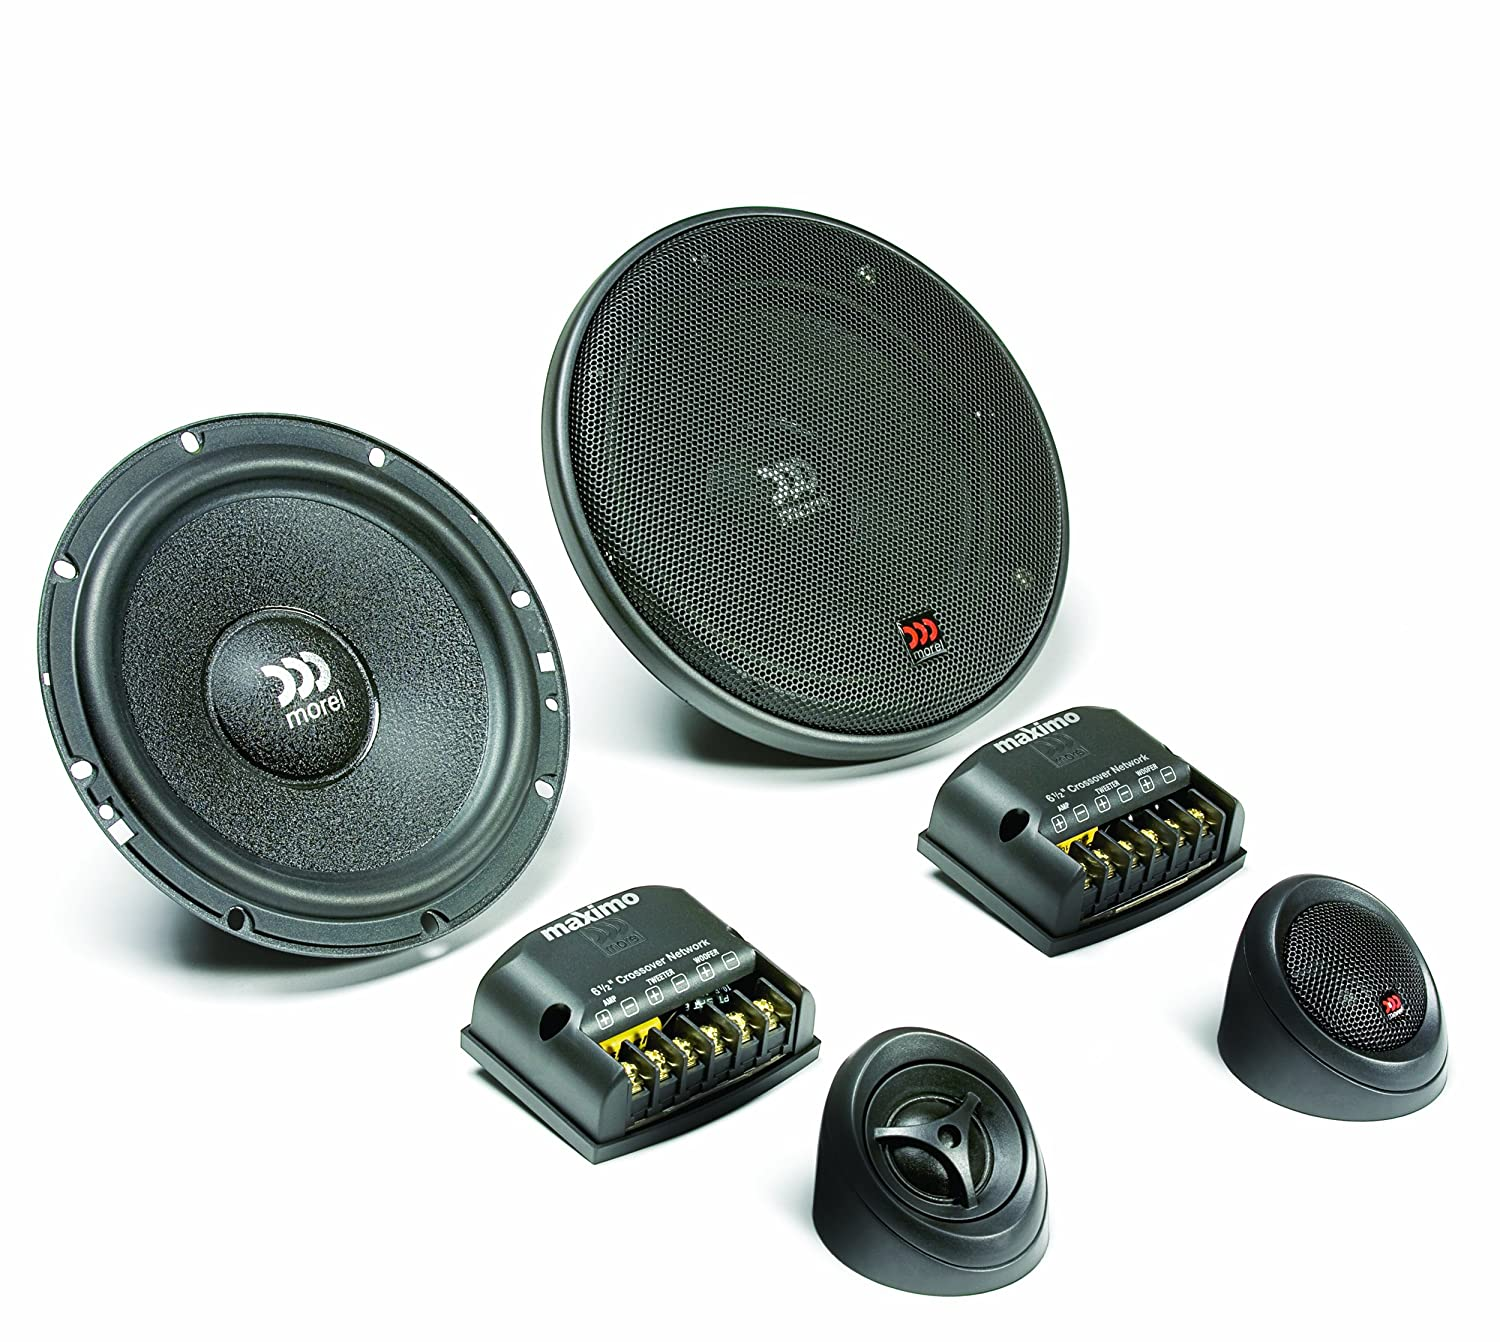 Morel Maximo 5.25-Inch Component Speaker System